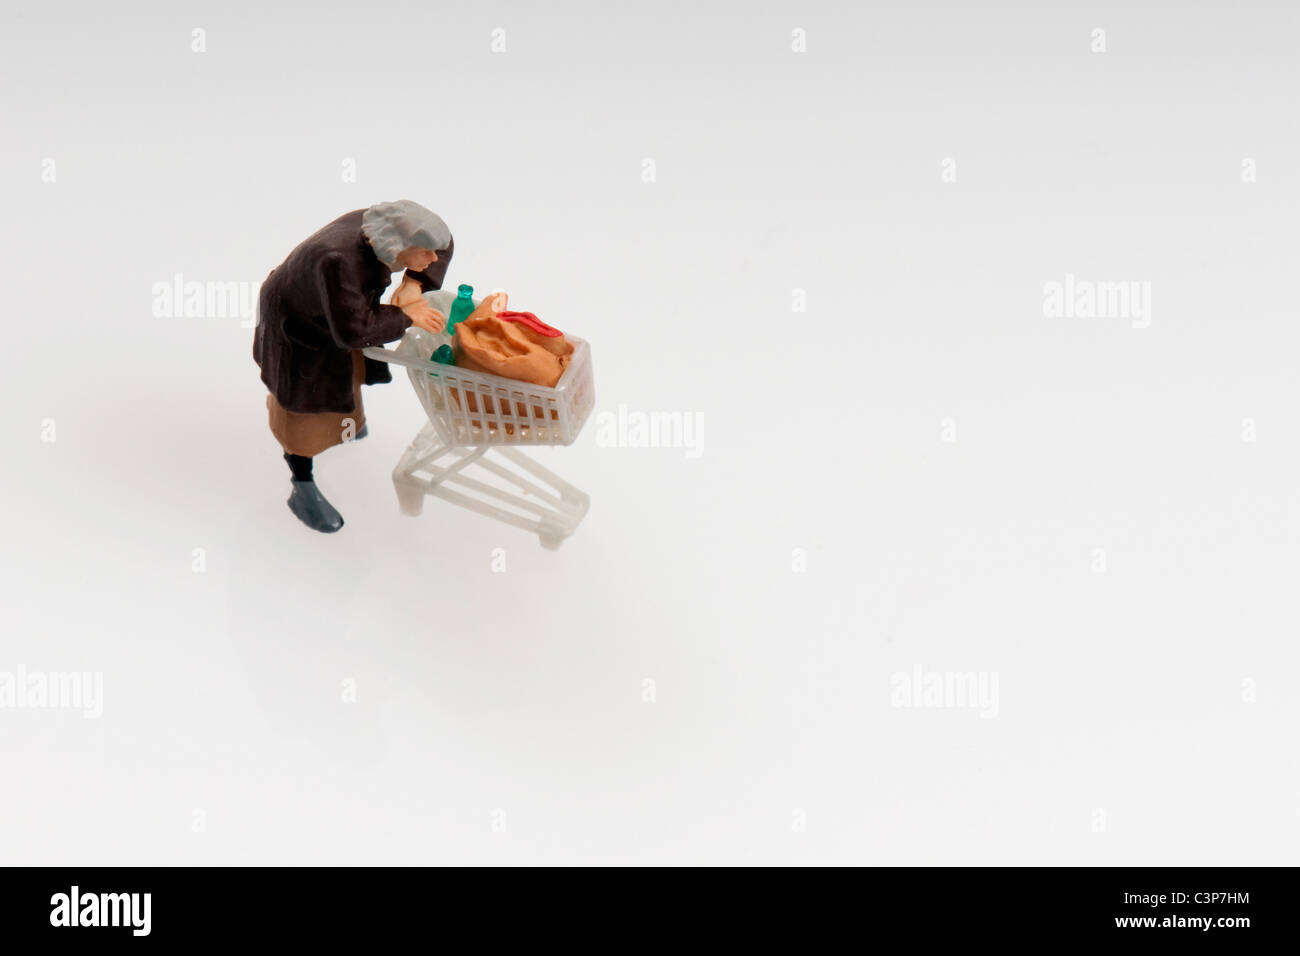 Plastic figurine with shopping cart - Stock Image